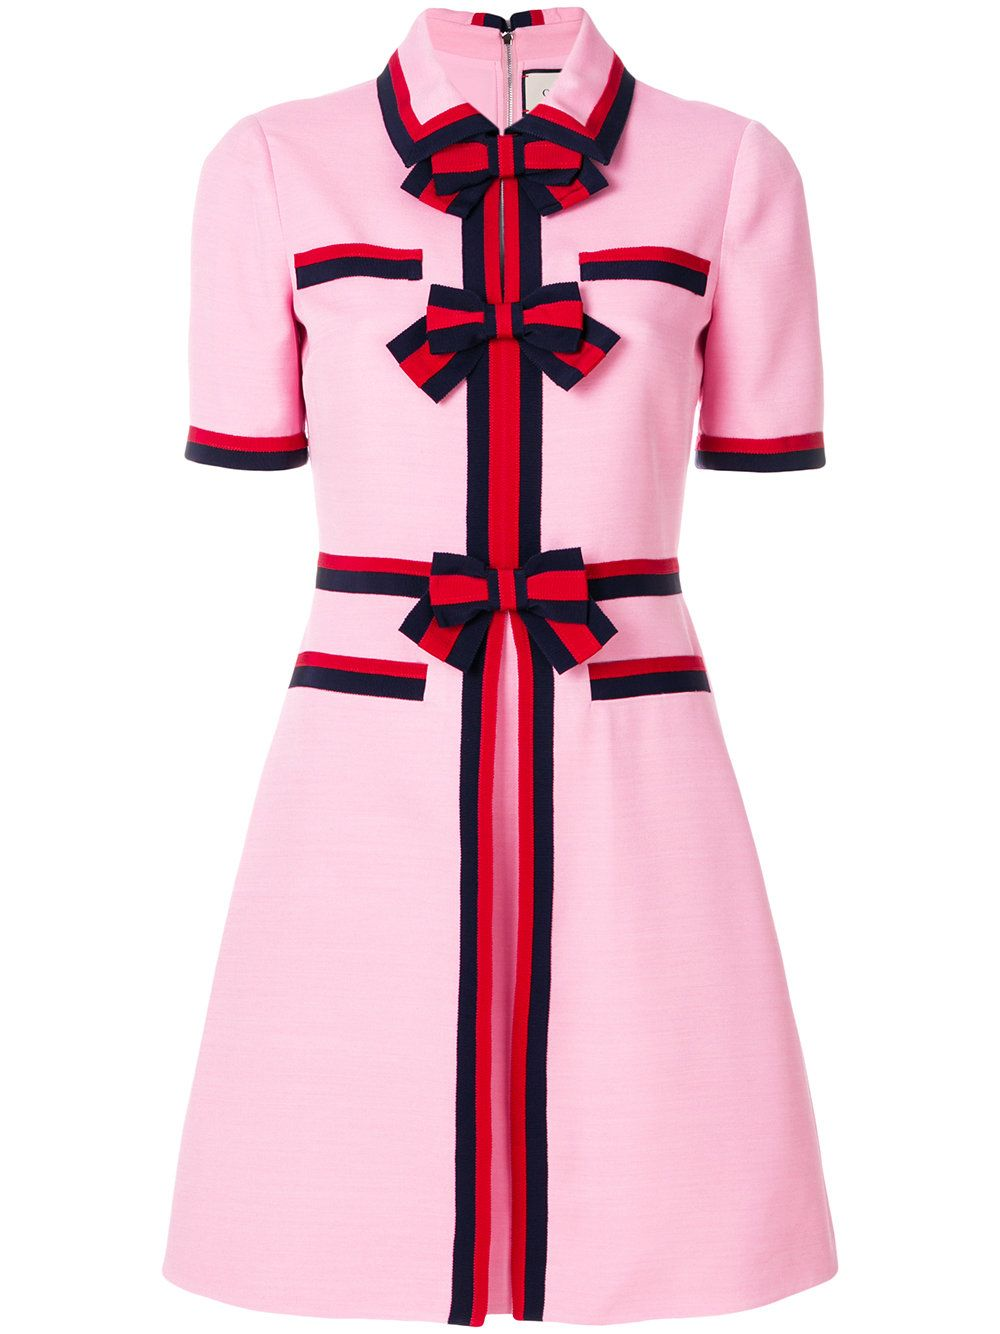 Gucci Web Stripe Bow Dress In Pink  ModeSens  Gucci kleider